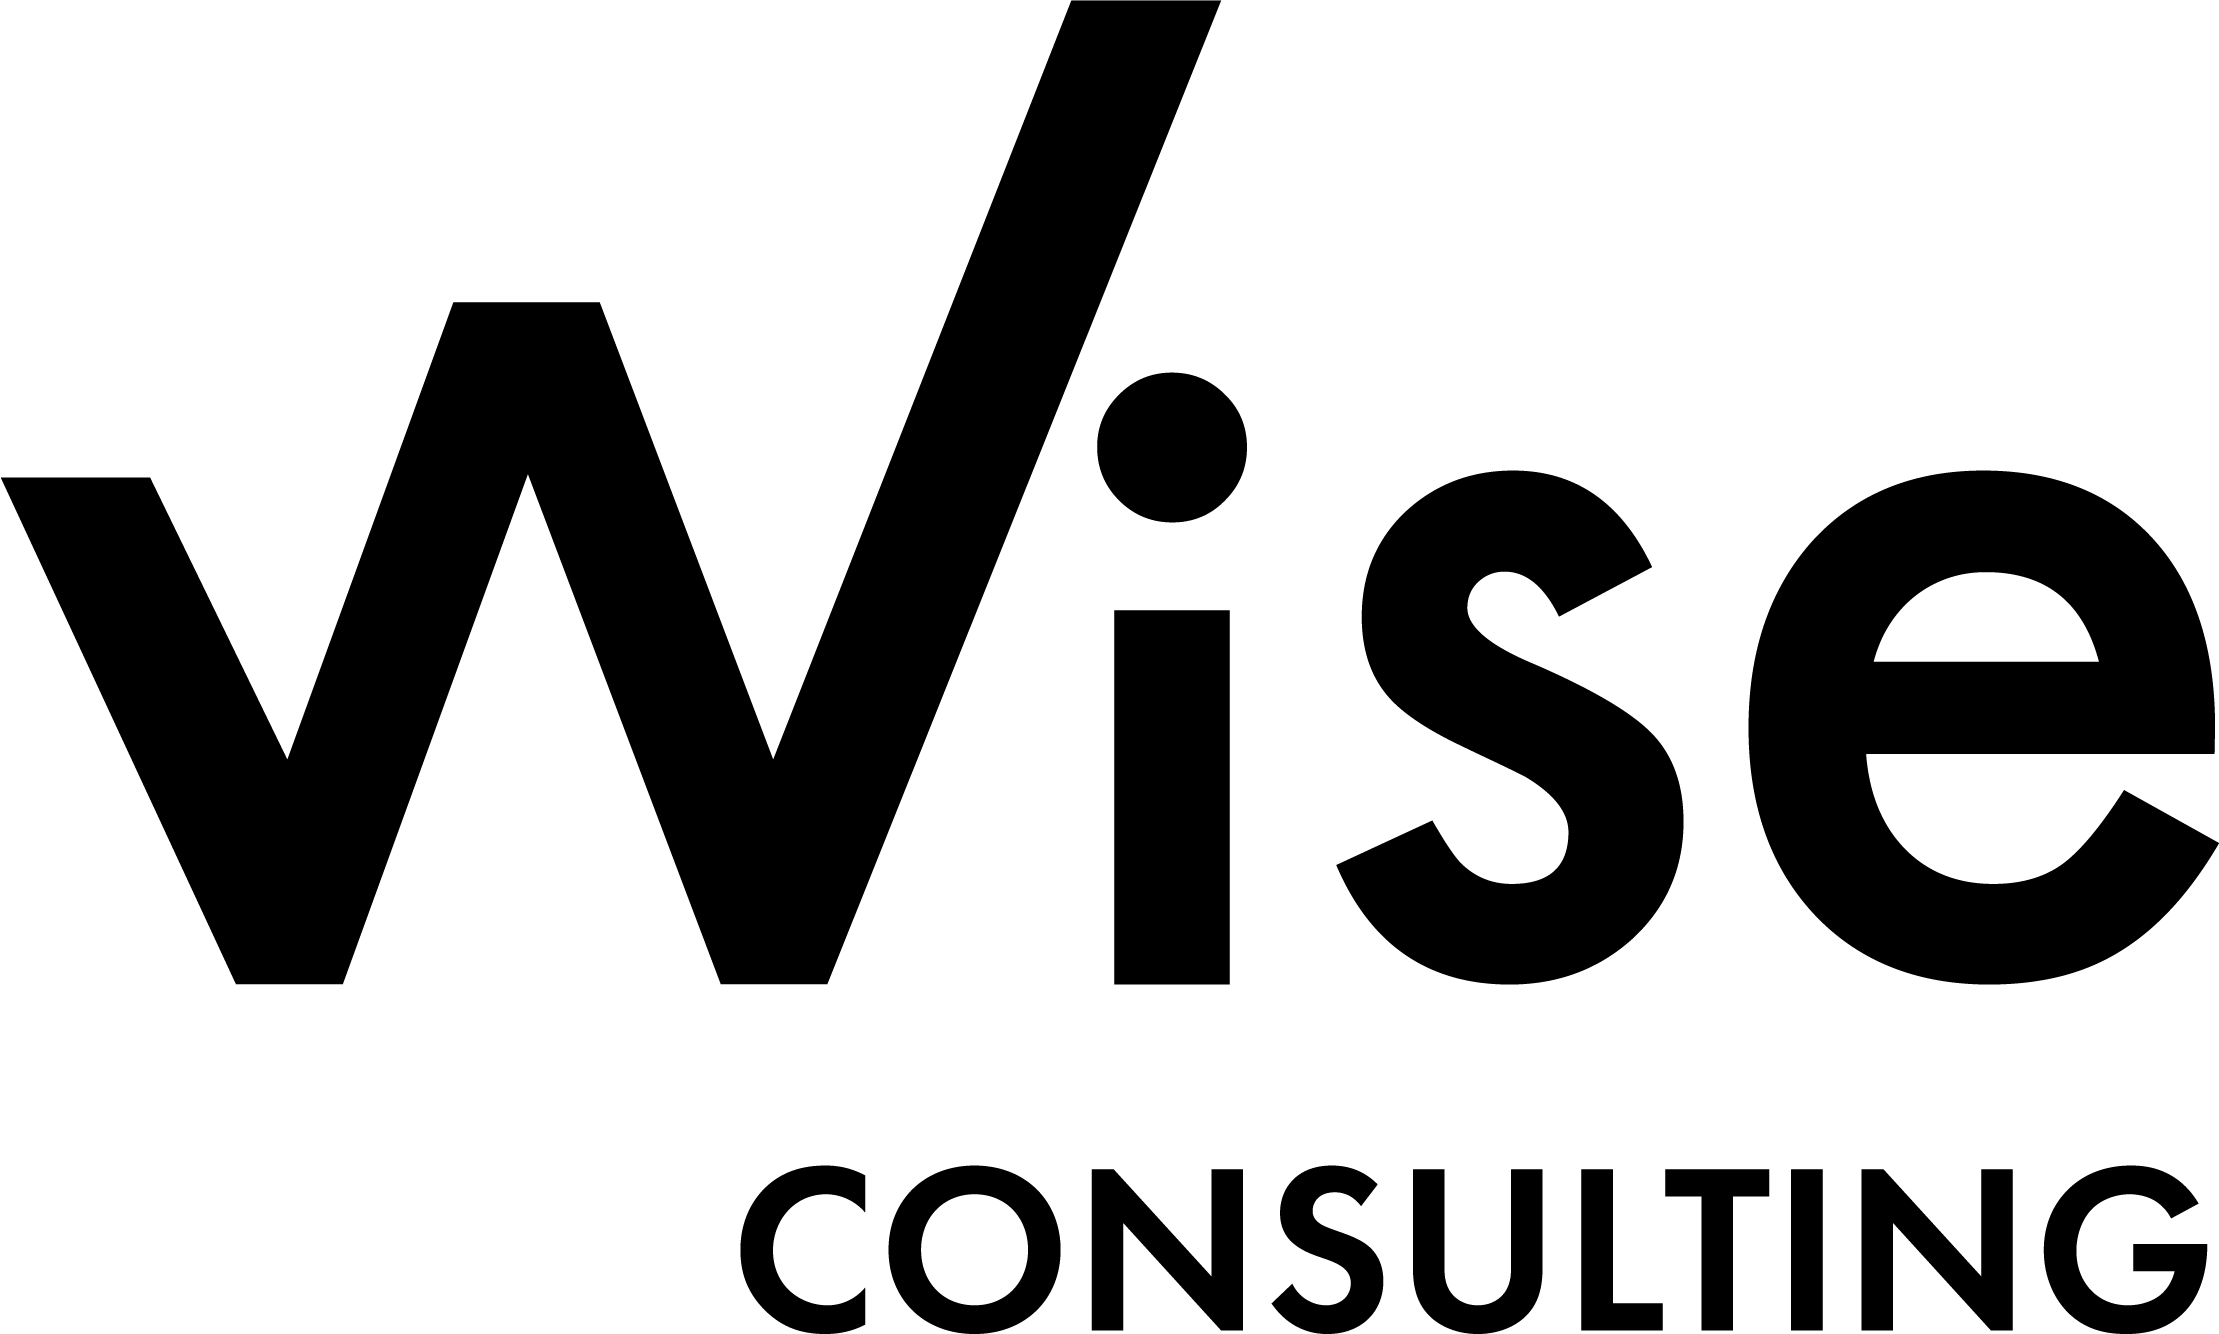 WISE_LOGOTYP_BLACK